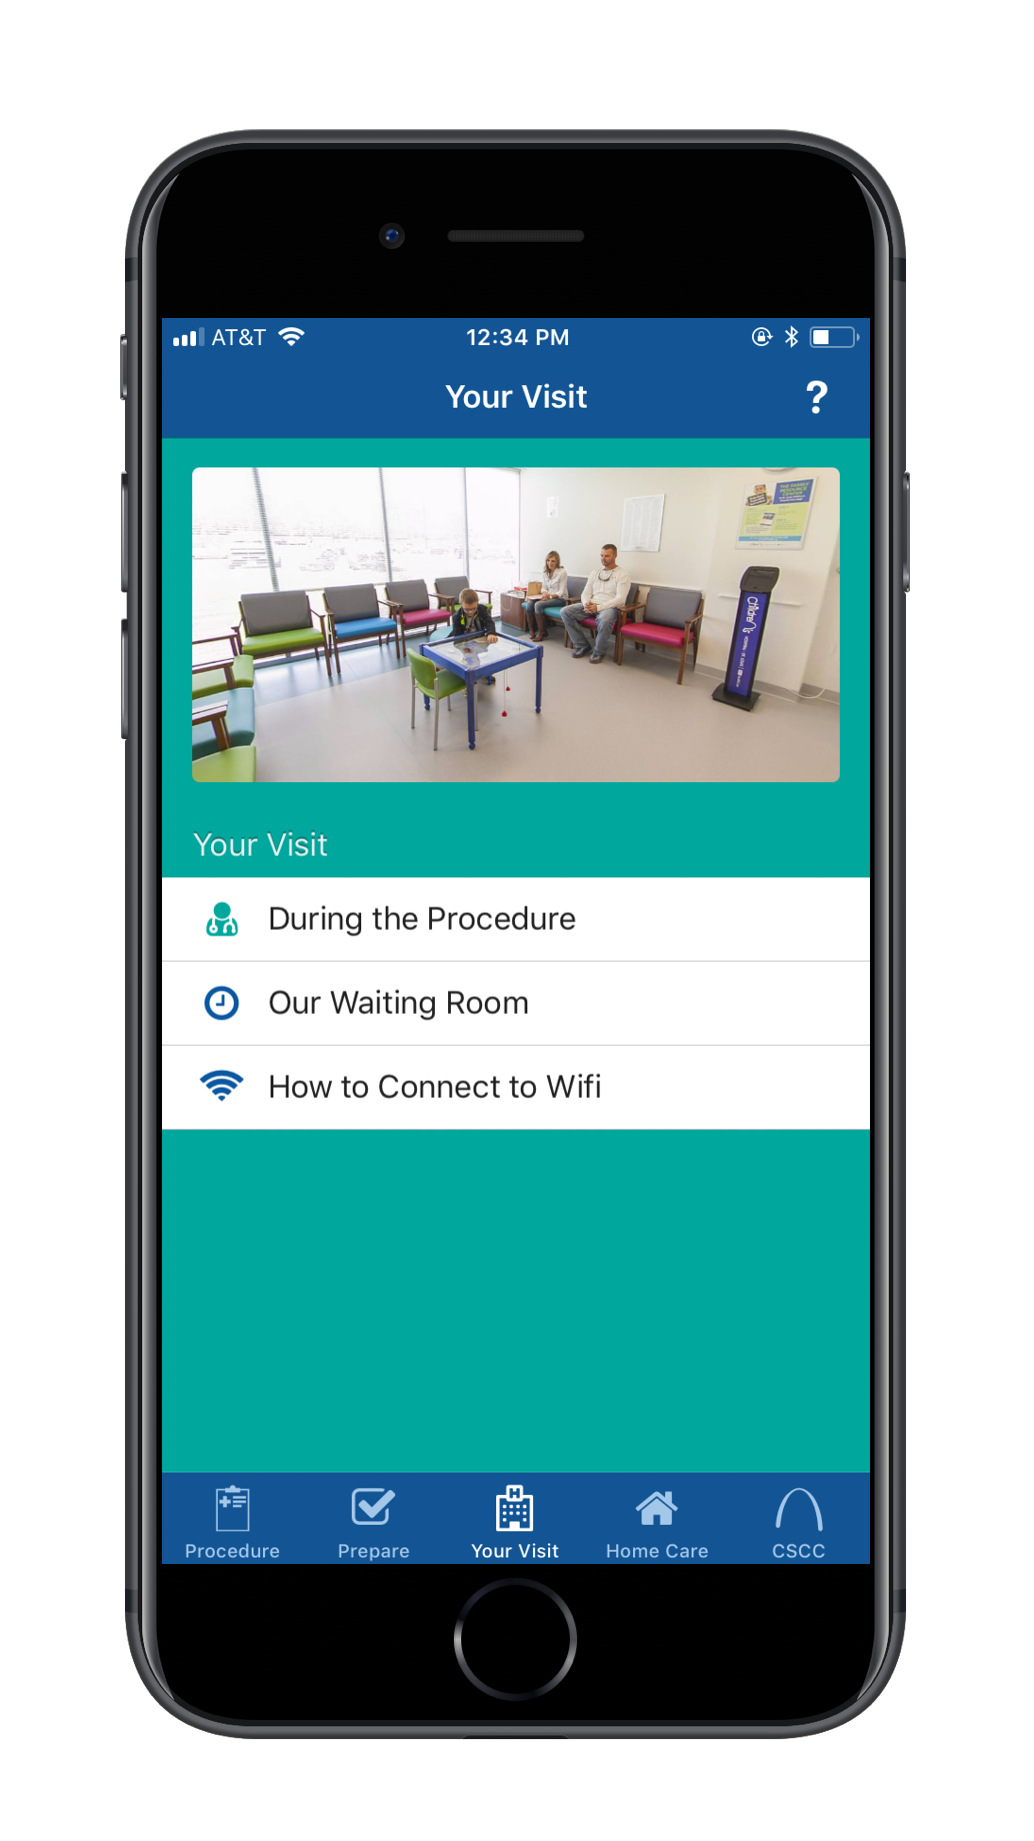 Screen cap of the Surgery Partner surgery app with information on Your Visit at the hospital